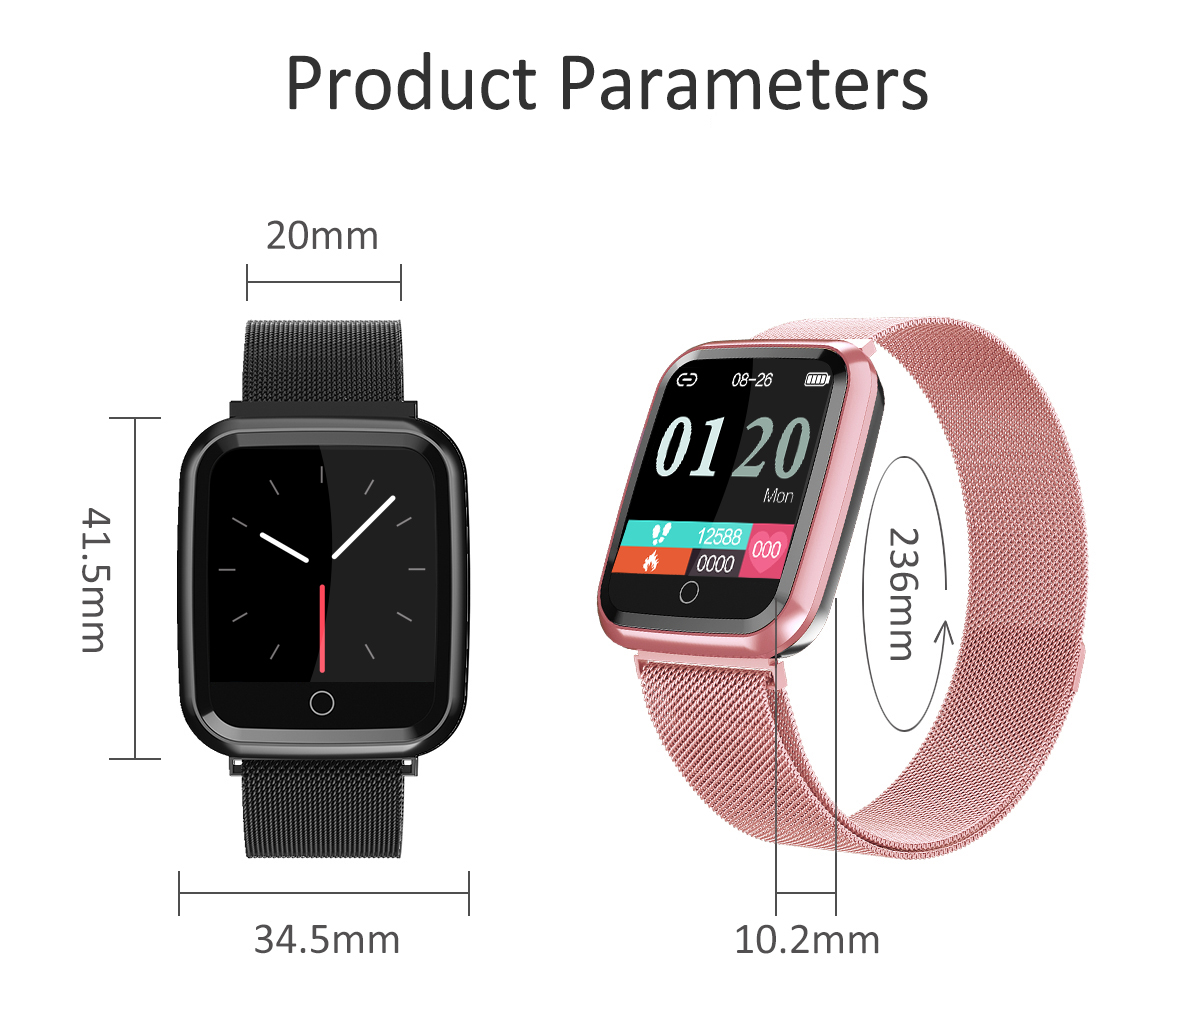 DAROBO N99 Sport and Heart rate monitor Smart watch with Waterproof Blood pressure monitor for men women available in Android IOS 17